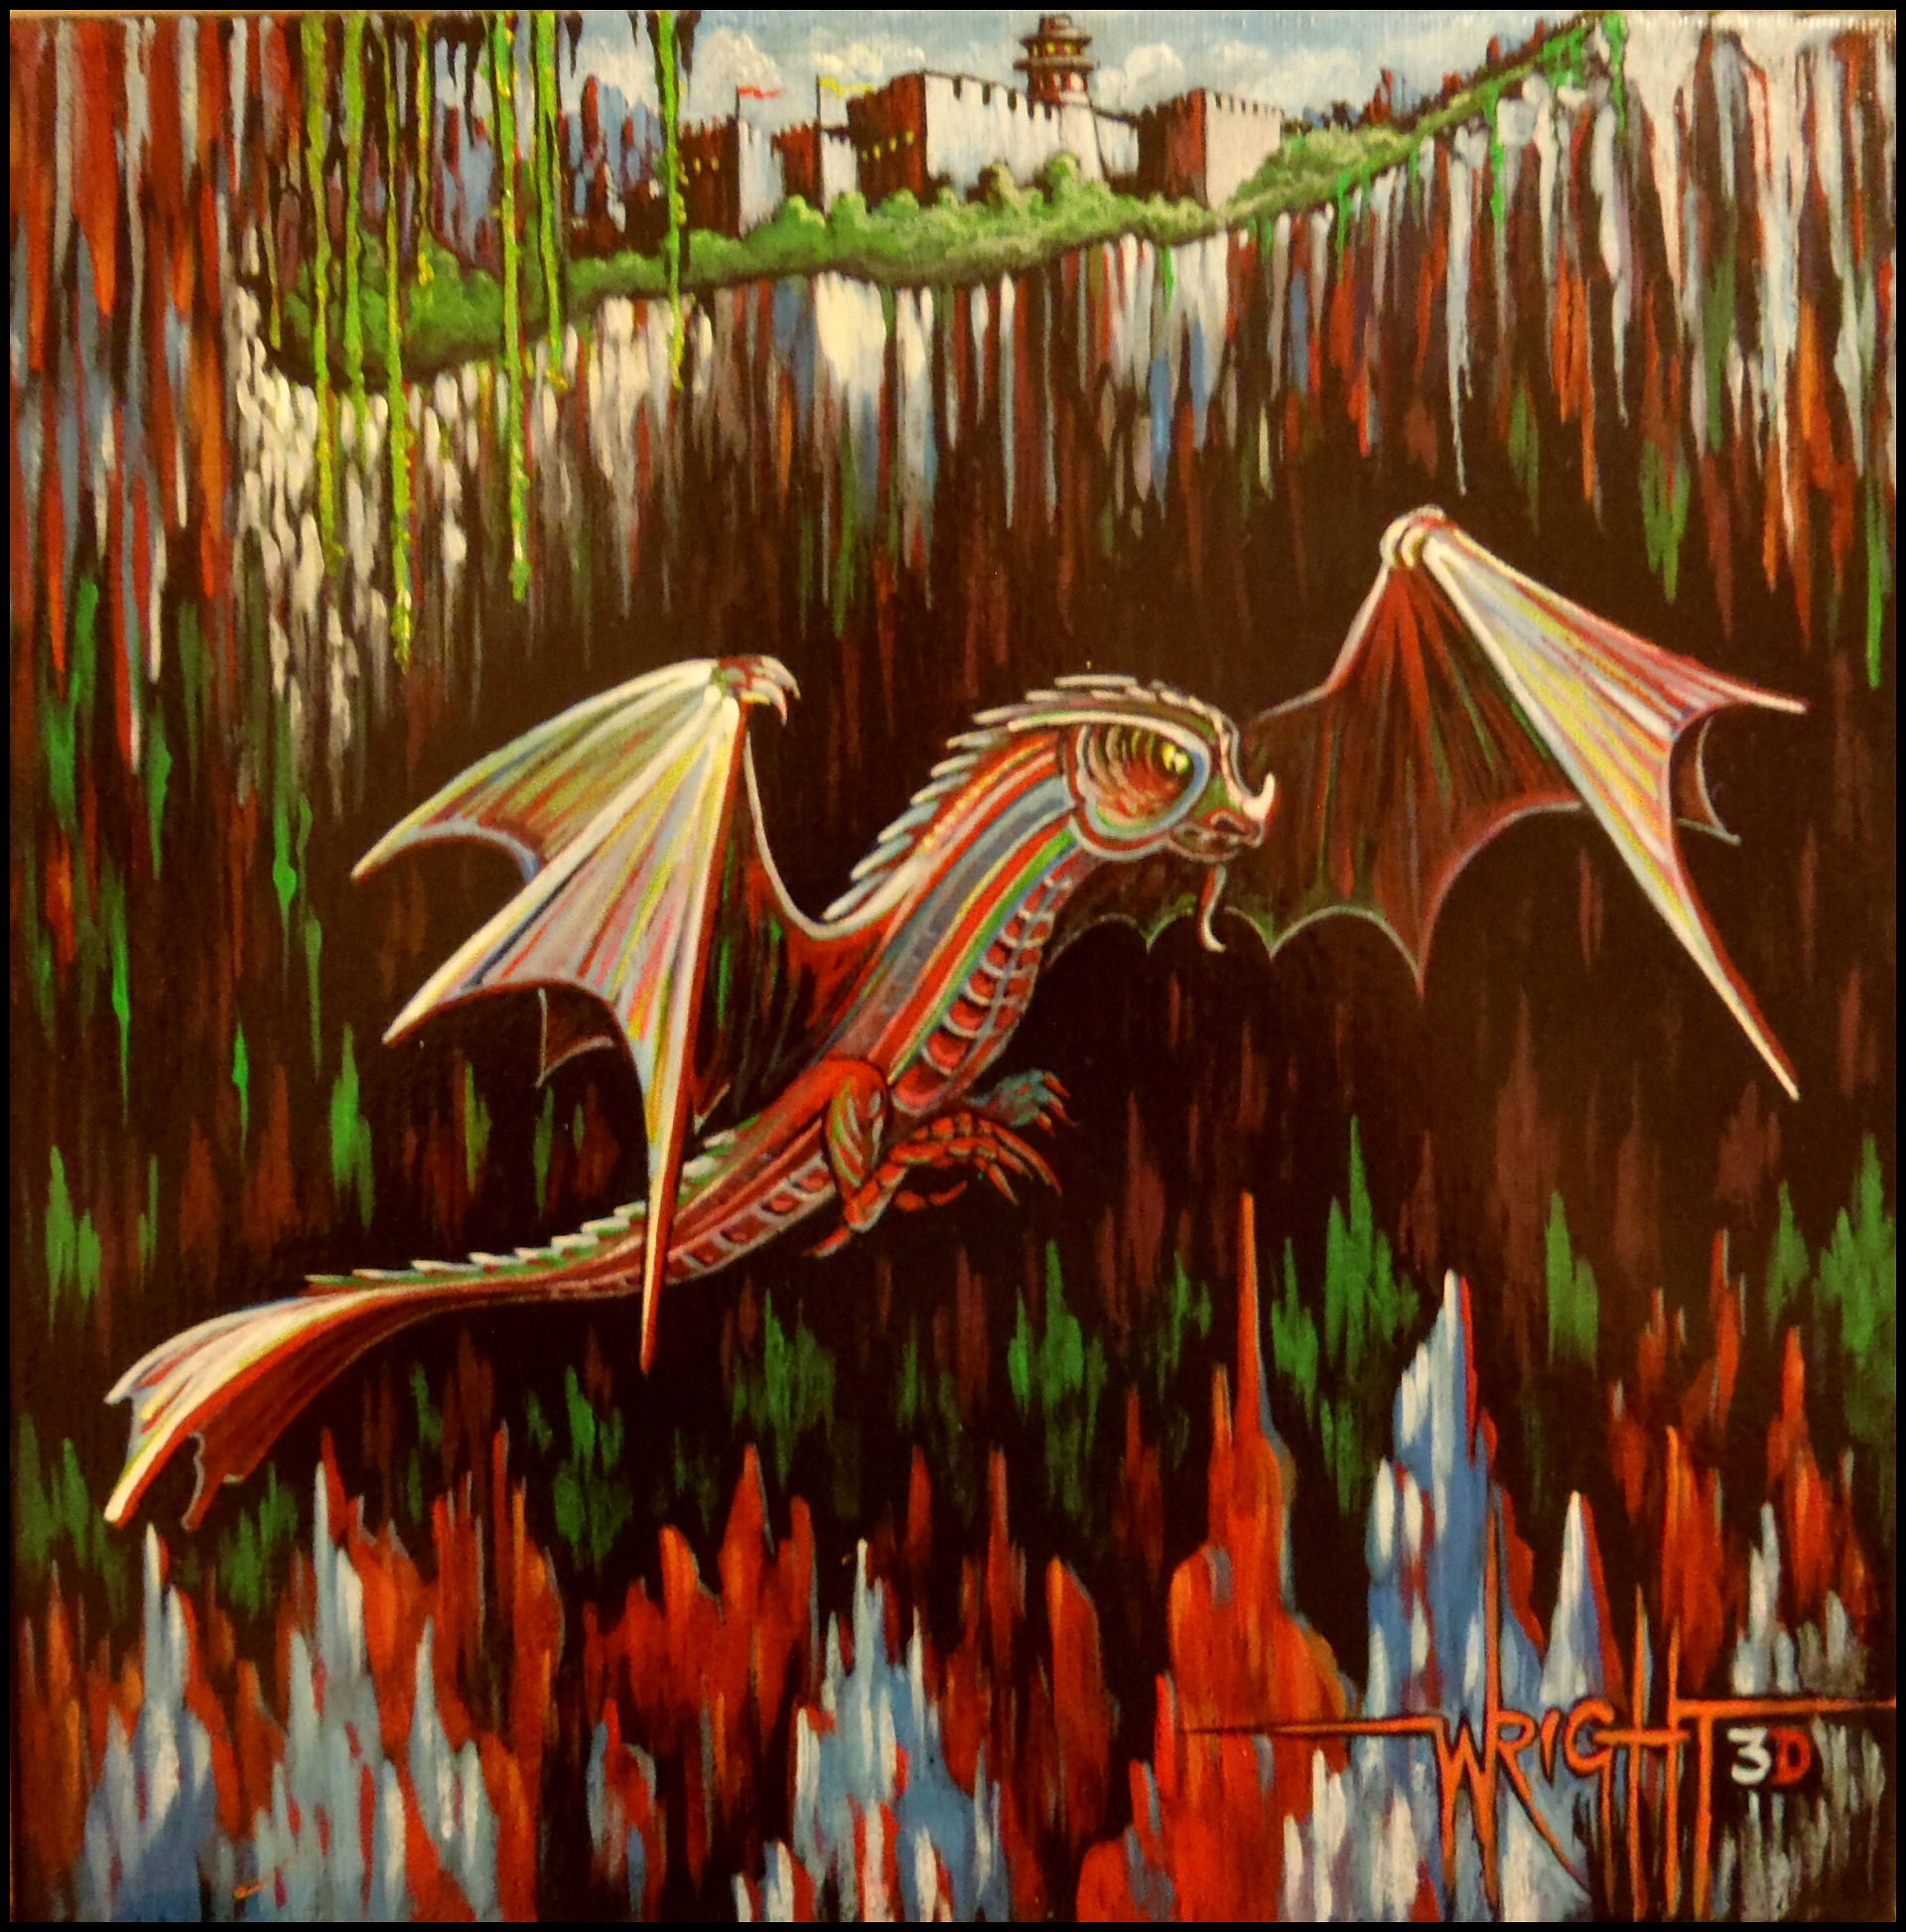 The Magic Dragon - 3D.